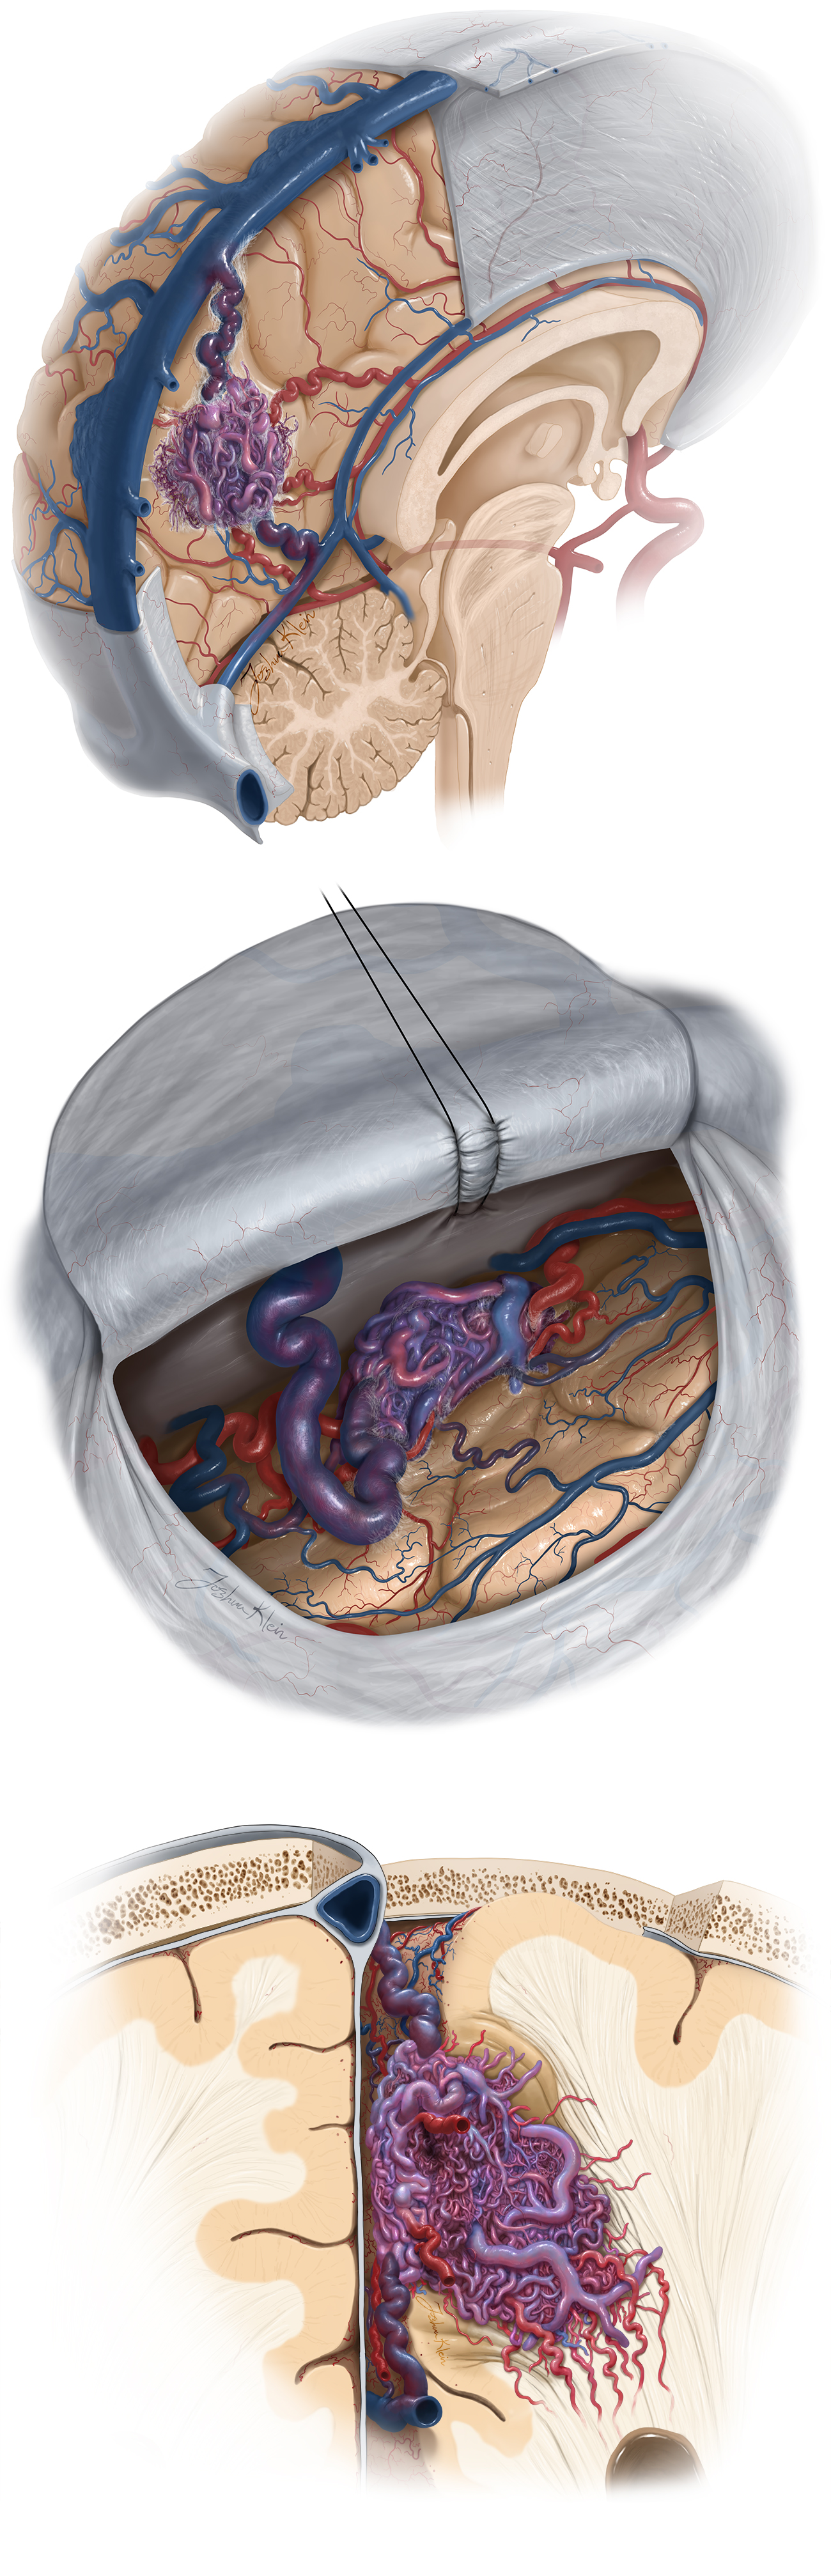 Figure 6: The angioarchitecture of this AVM subtype is demonstrated. Note the abovedescribed feeding arteries and draining veins. Larger AVMs reach the atrium and receive choroidal deep white matter feeders.